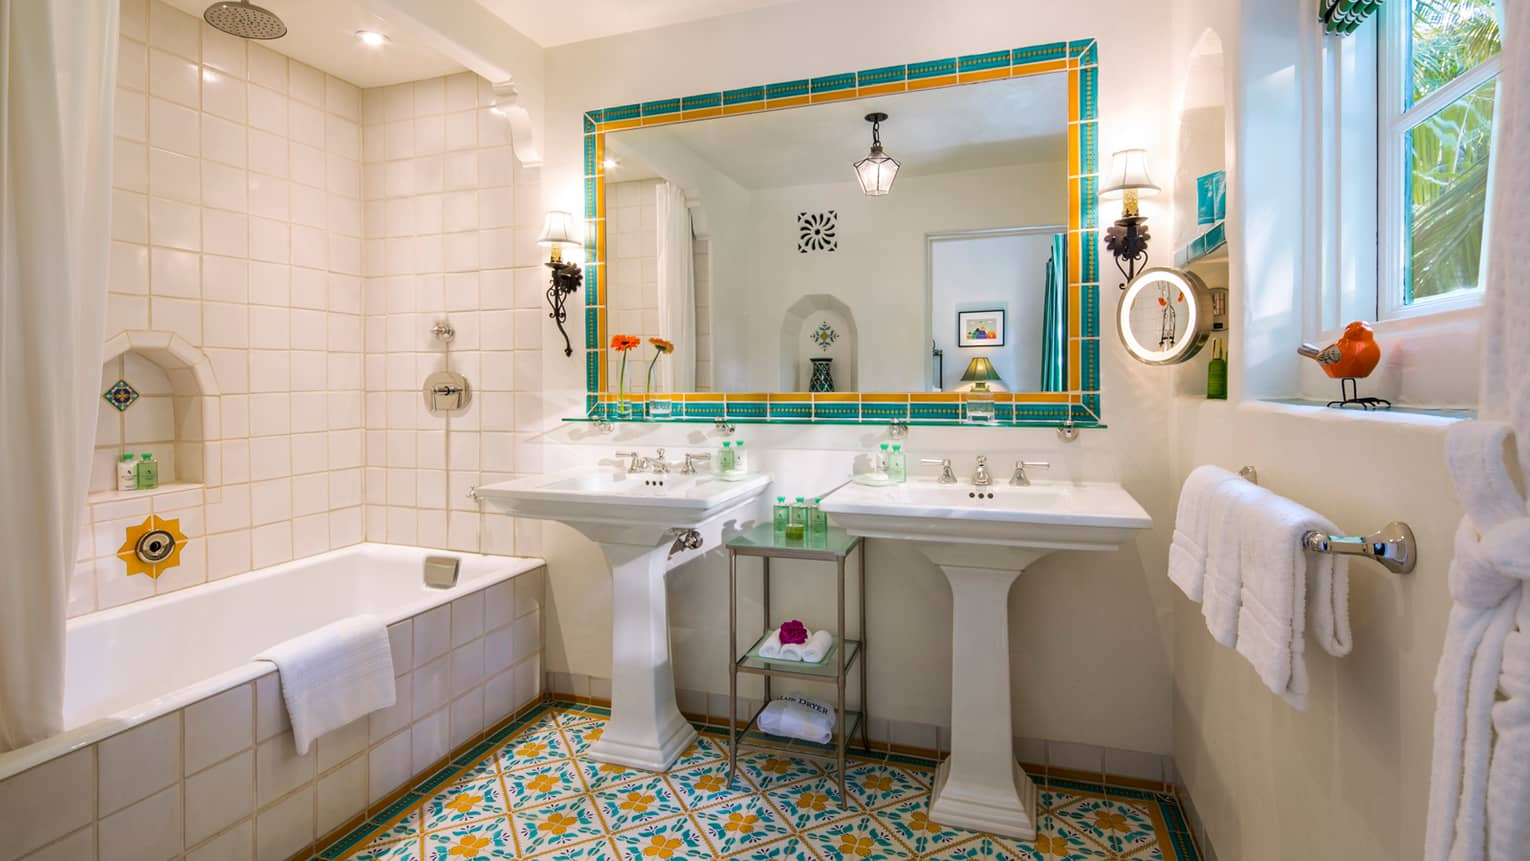 Mariposa Suite bathroom double free-standing sinks, large mirror, TV, colourful Spanish tiles